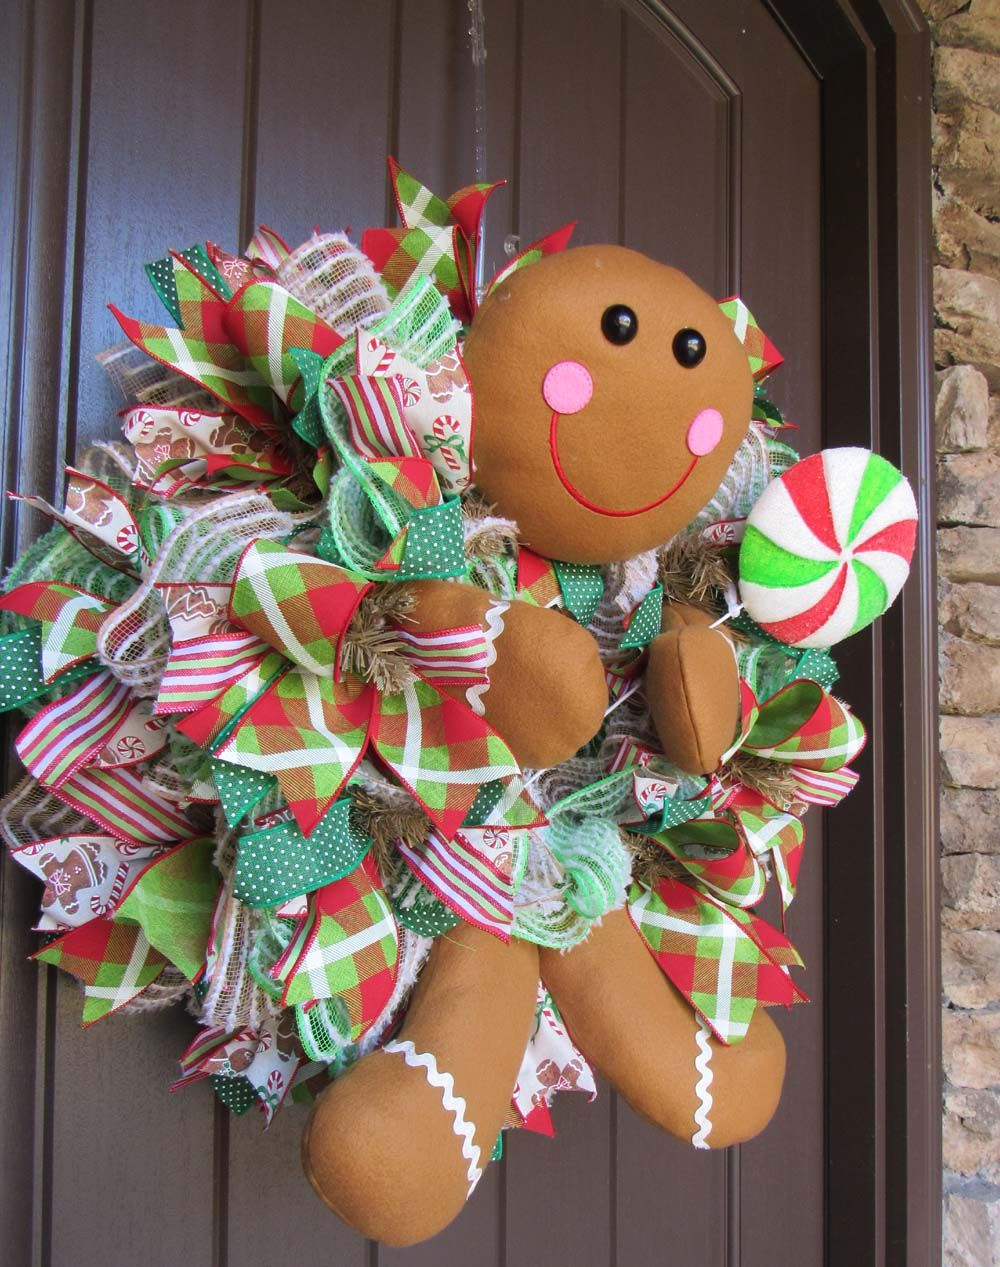 2018 Gingerbread Boy Wreath Tutorial Ribbon wreath